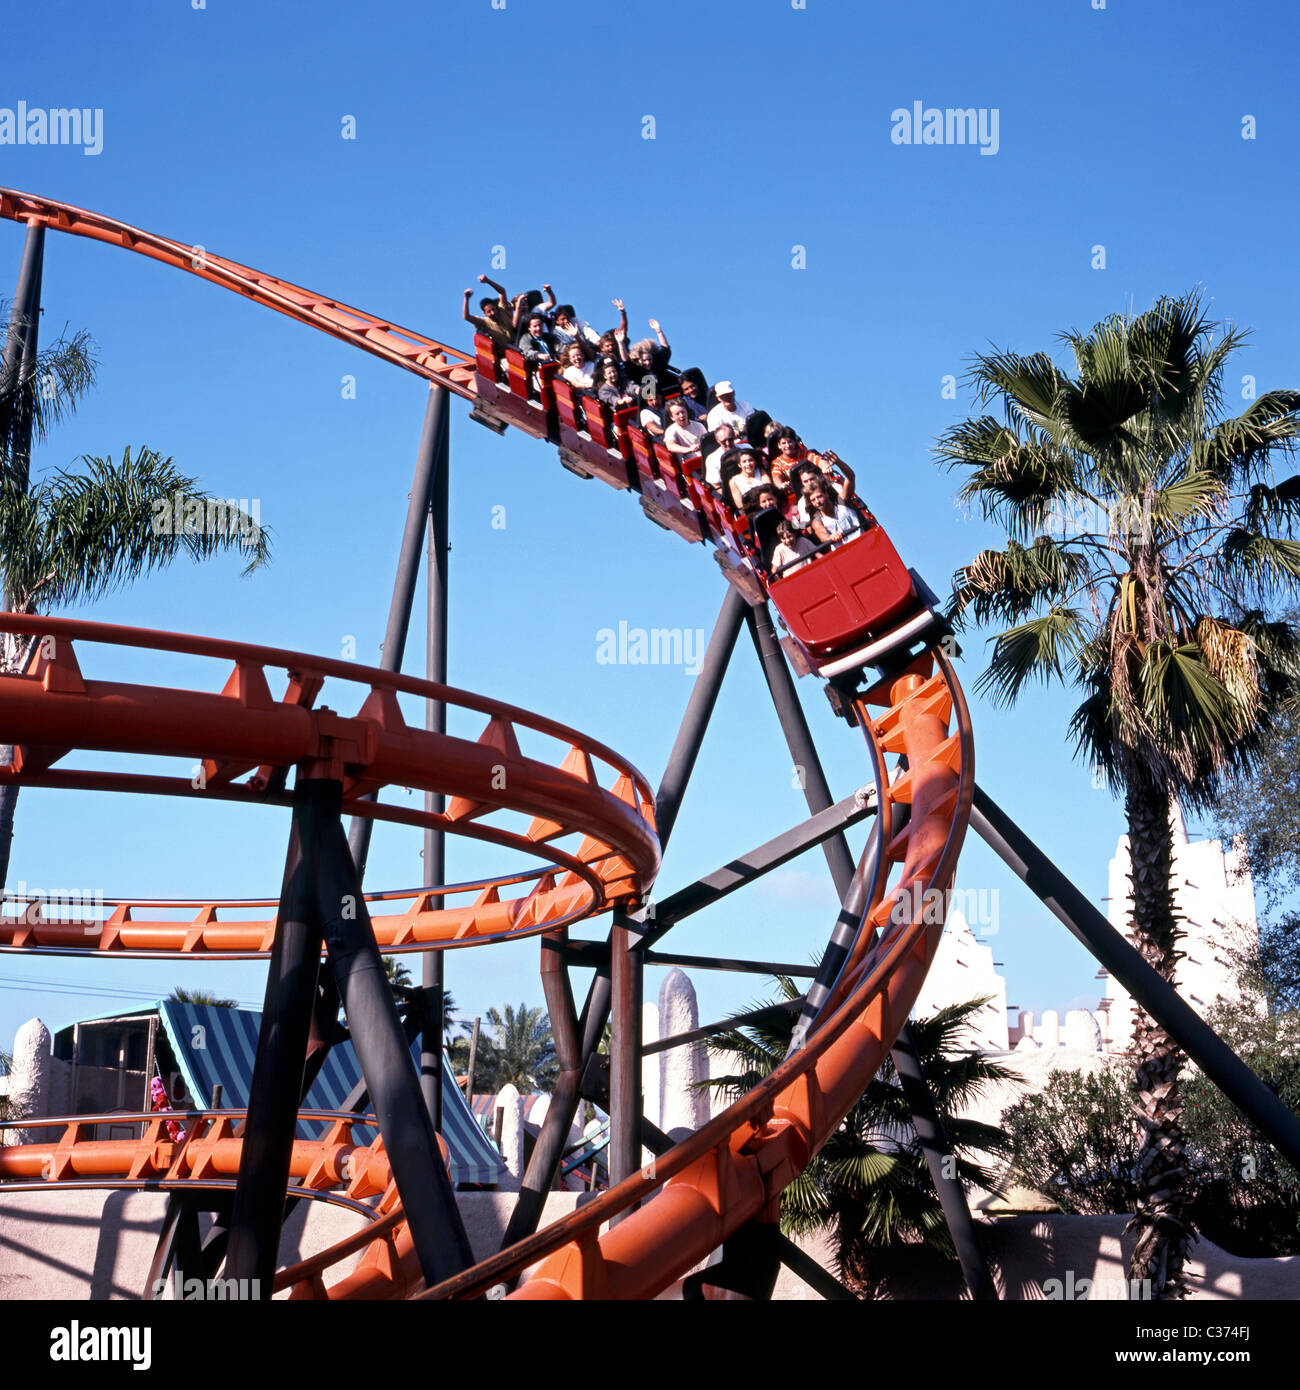 The Scorpion Roller Coaster Ride, Busch Gardens Theme Park, Tampa, Florida,  USA